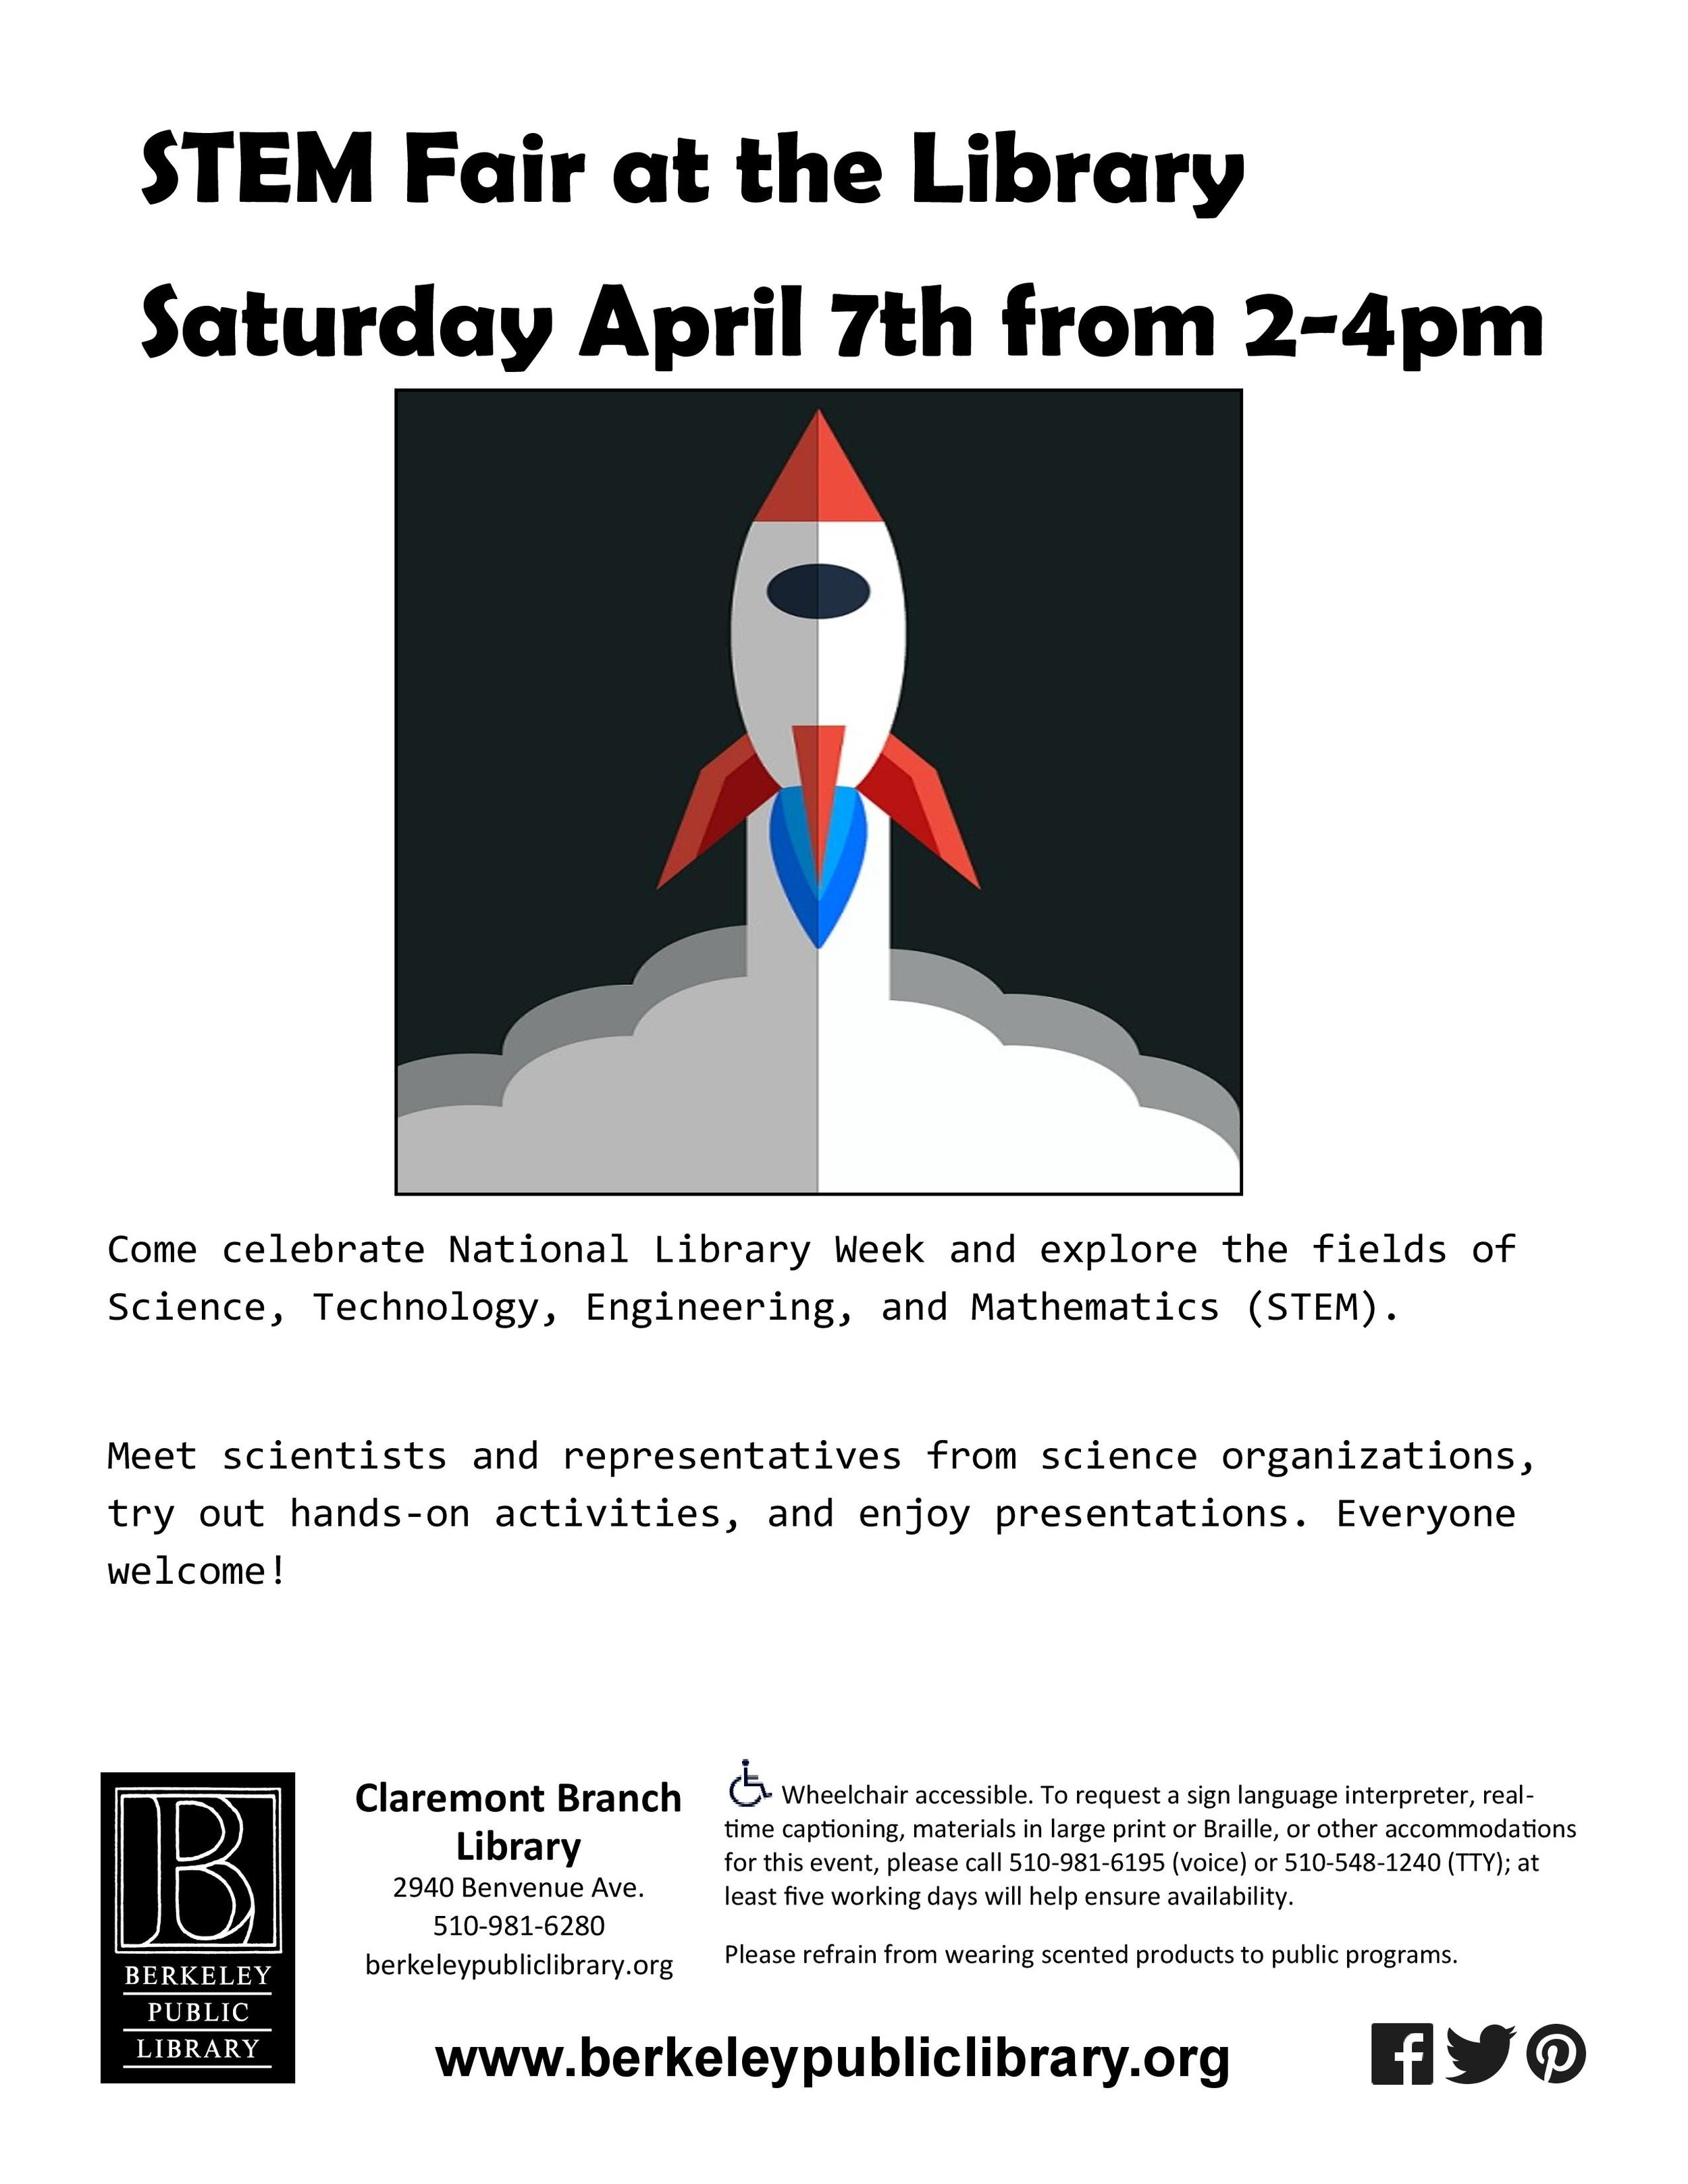 Click this event to plan your trip to                       the STEM Fair in Berkeley!